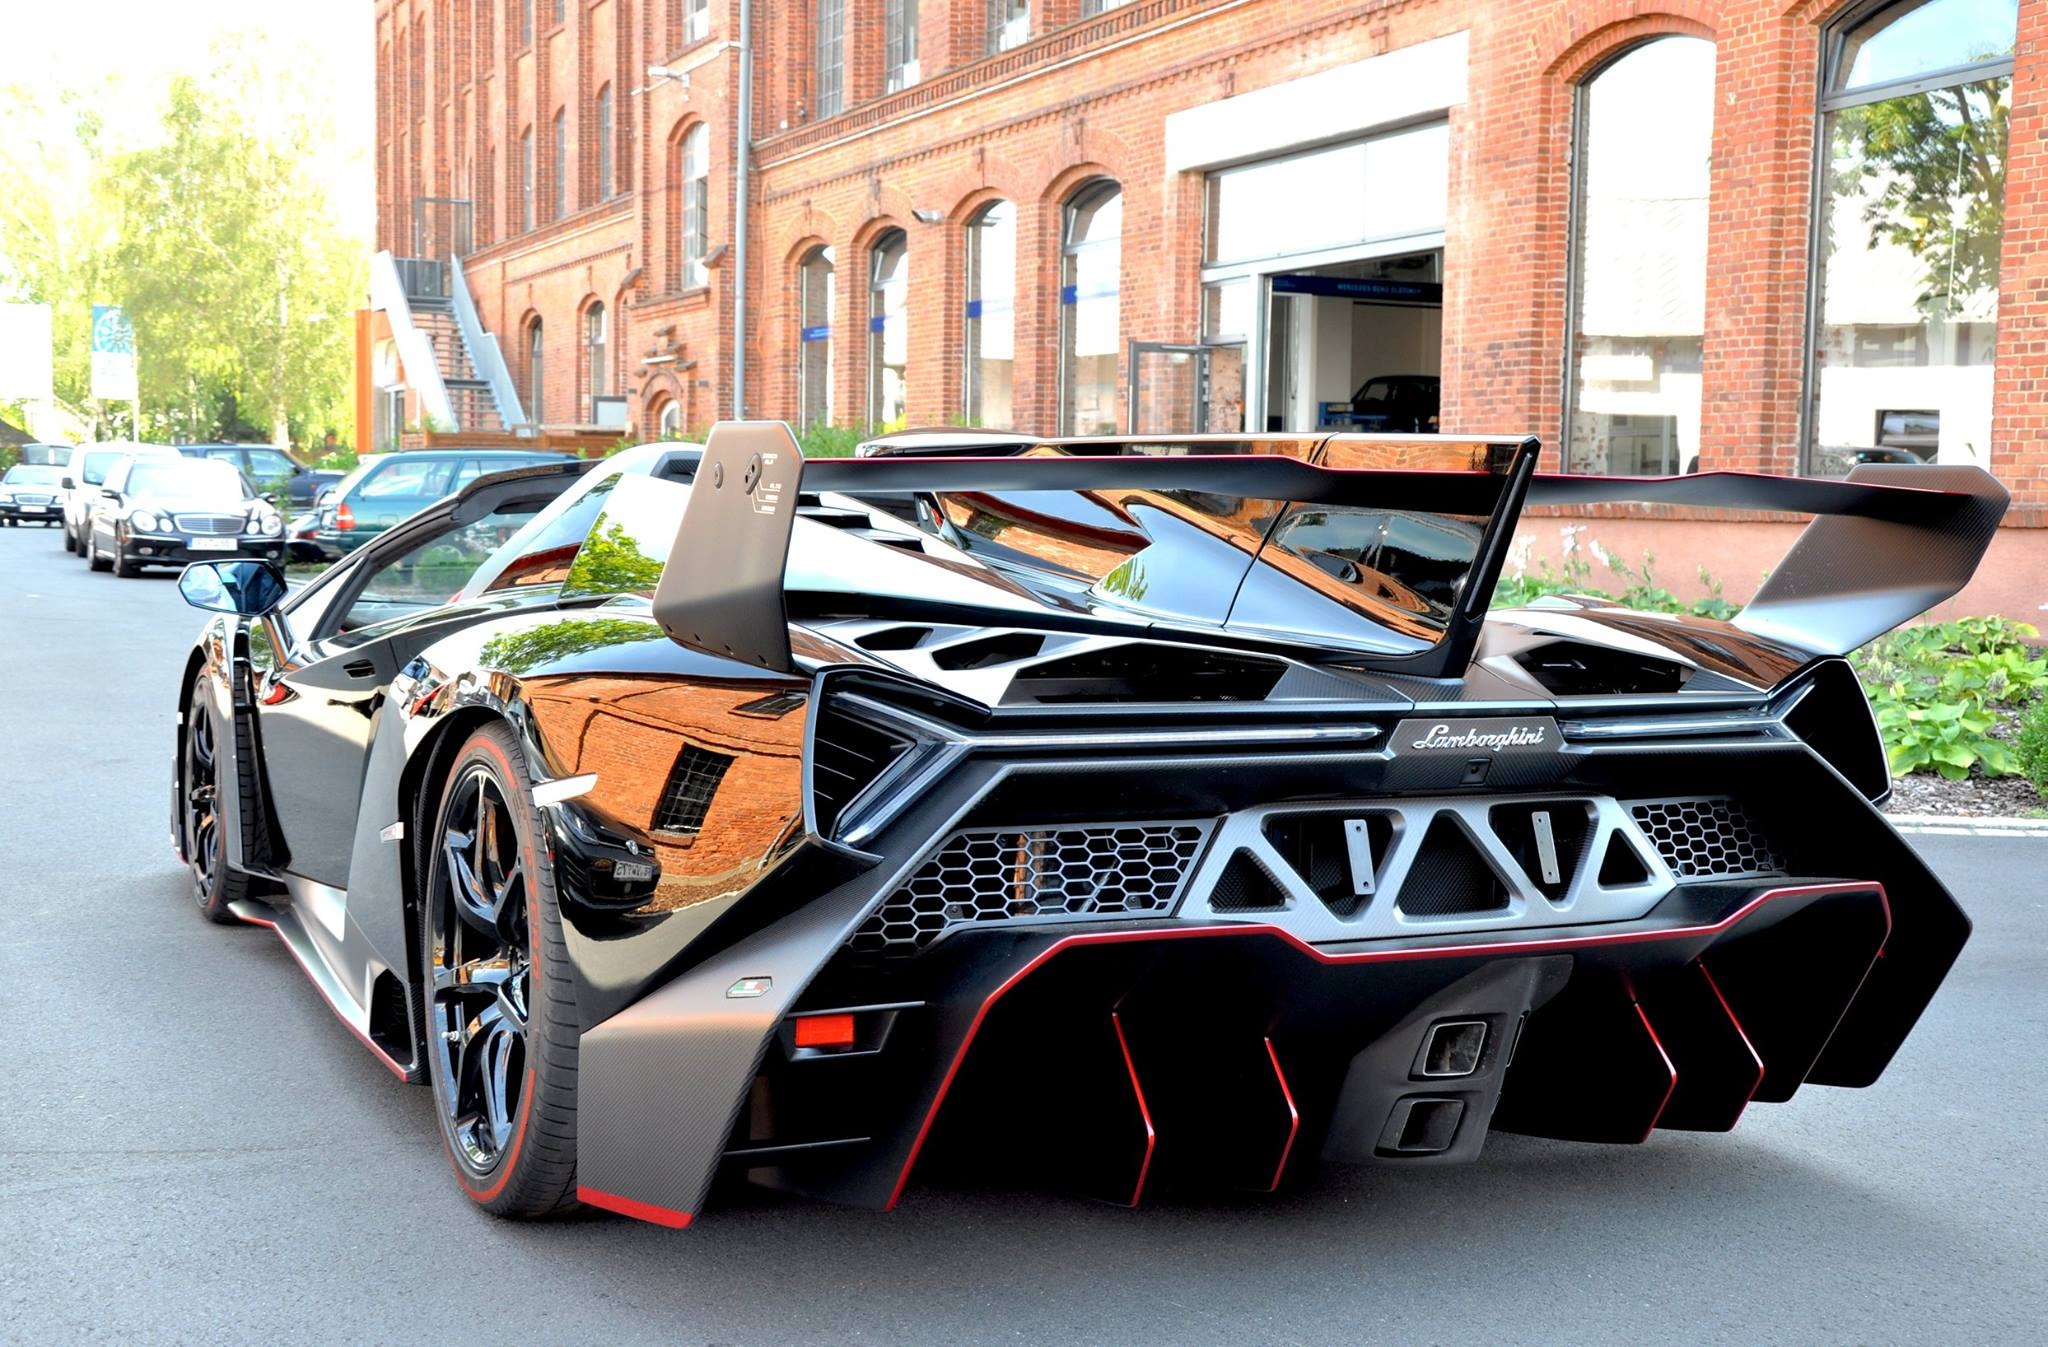 16 lamborghini veneno hd wallpapers | background images - wallpaper